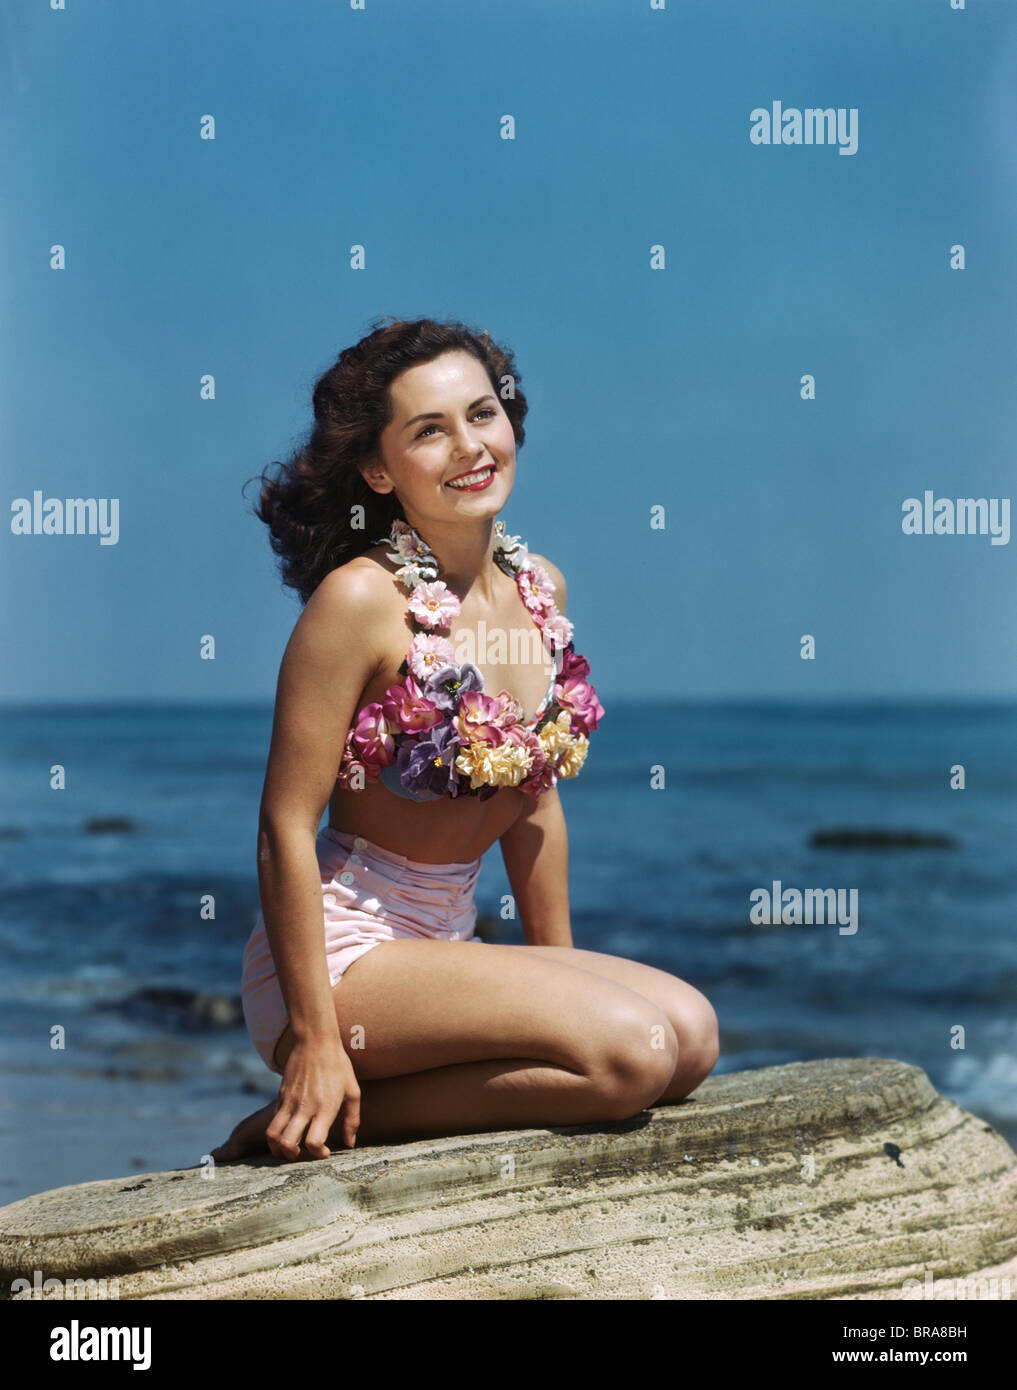 1940s 1950s SMILING BRUNETTE WOMAN SITTING ON ROCK WEARING TWO PIECE BATHING SUIT APPLIQUÉD WITH PASTEL FLOWERS - Stock Image